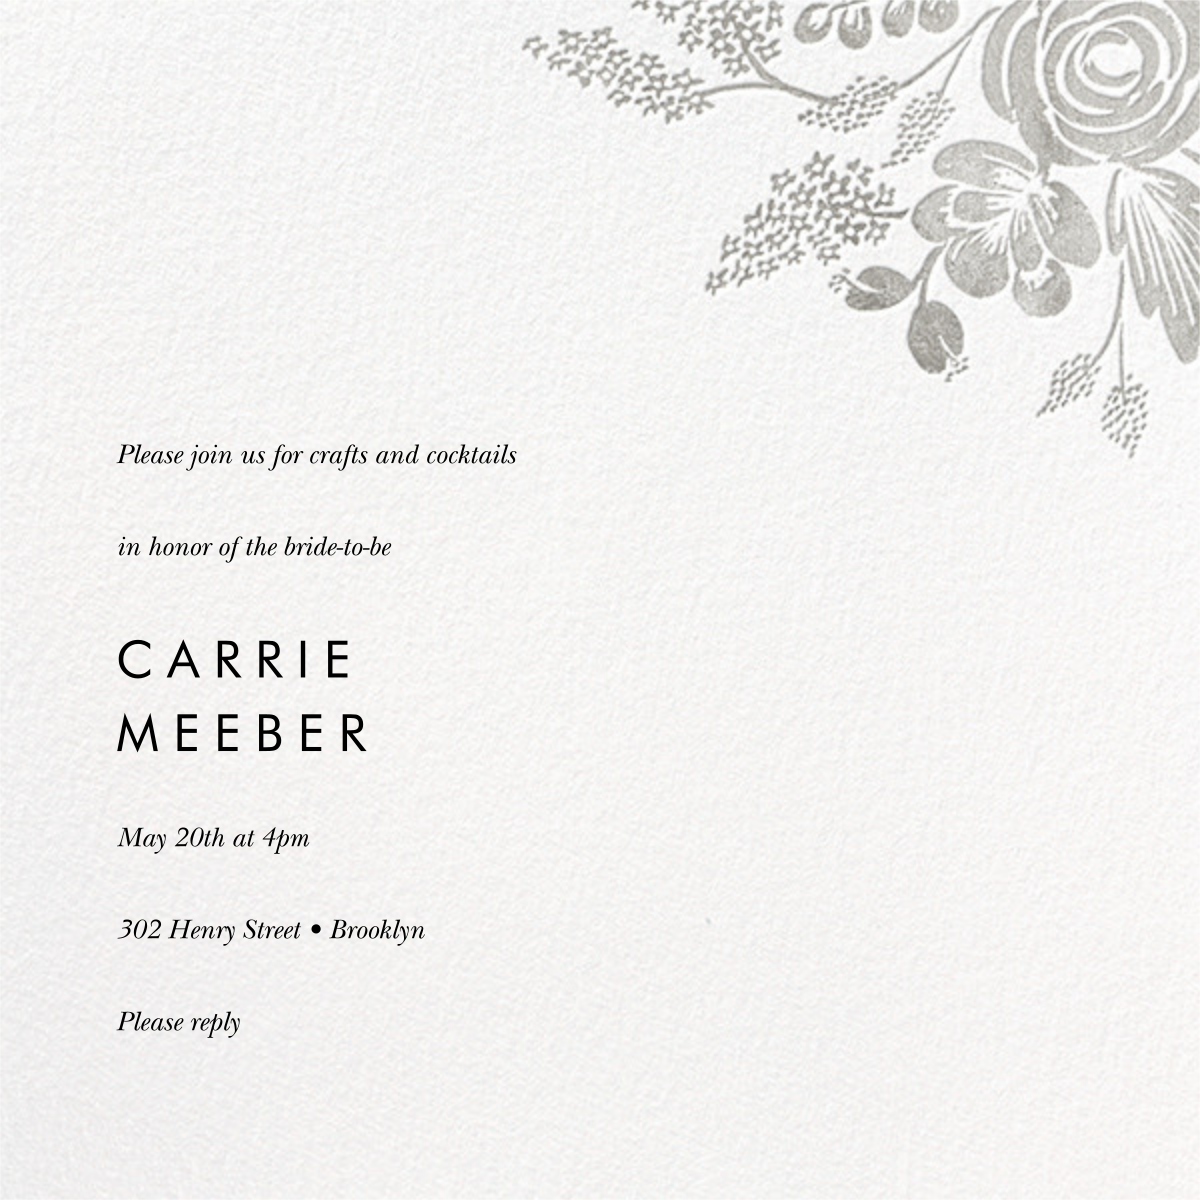 Heather and Lace (Square) - Silver - Rifle Paper Co. - Bridal shower